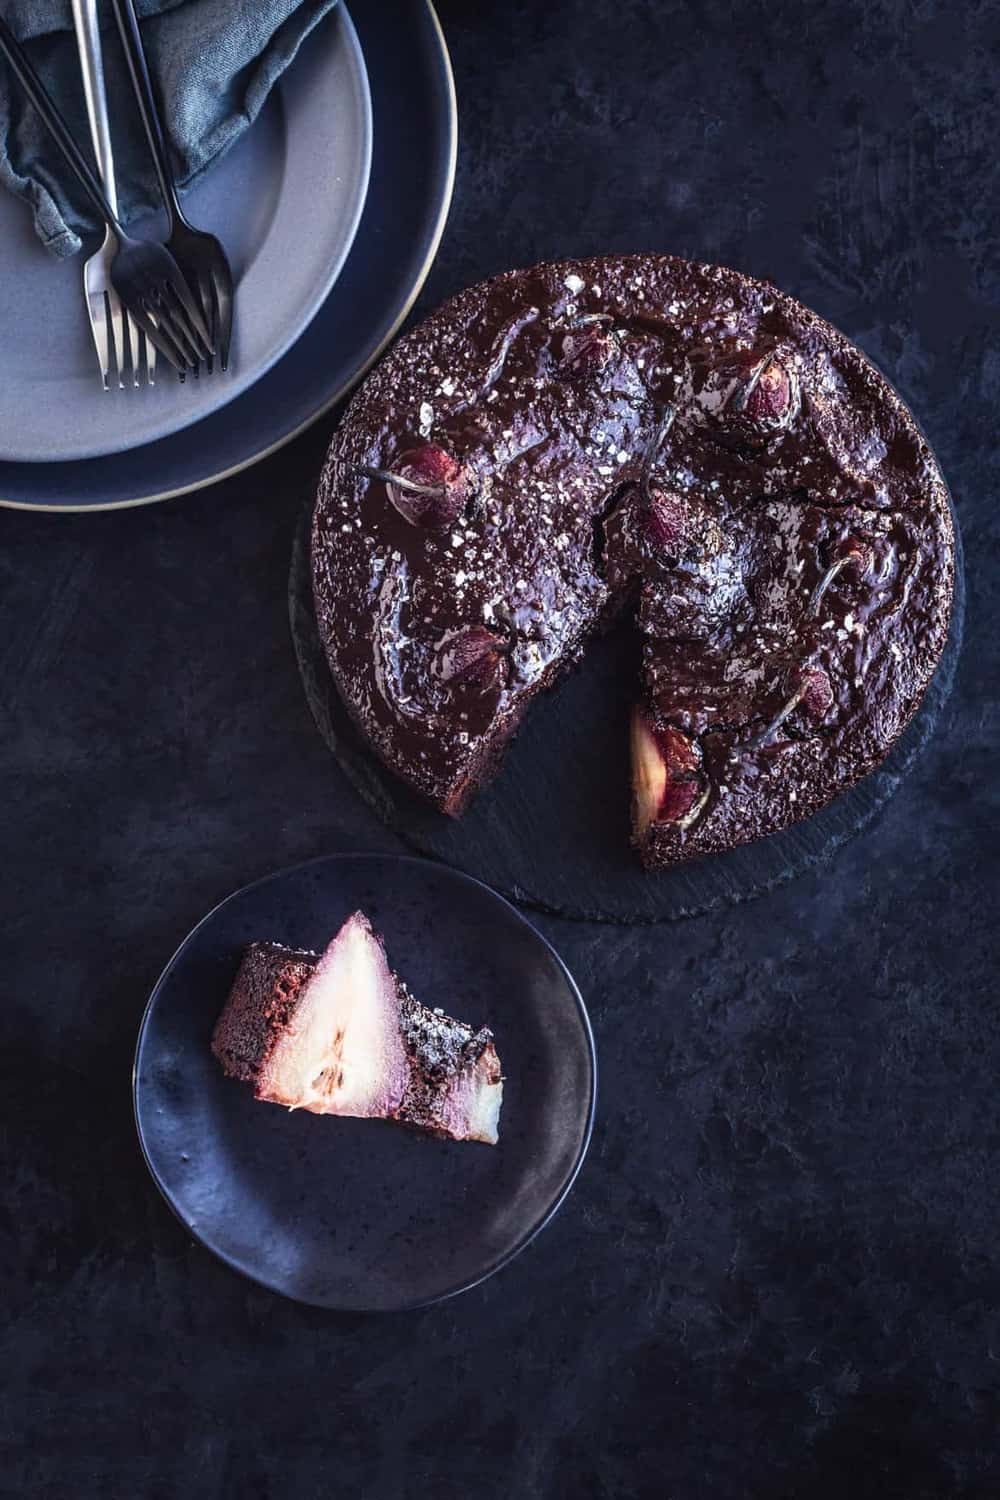 Spiced red wine pear and chocolate cake tablescape. The cake is cut into, with a piece served on a plate, with other plates, utensils and the rest of the cake in the frame, on a black background.